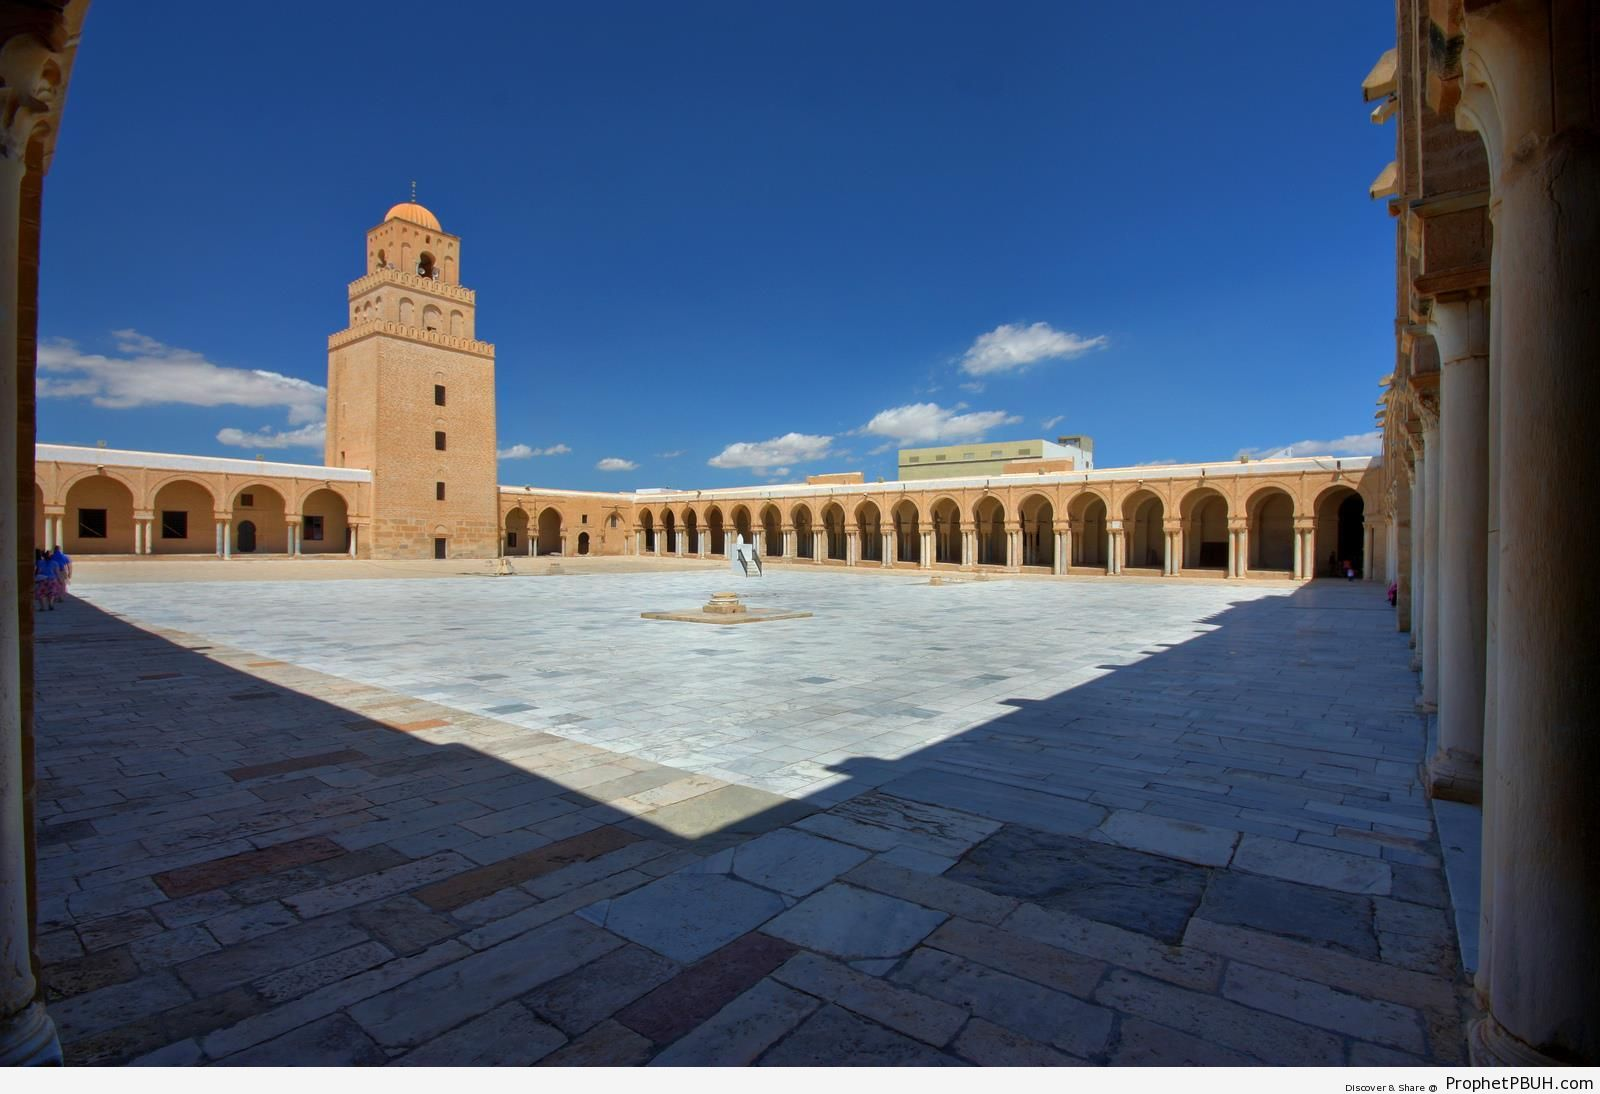 Mosque of Uqba (The Great Mosque of Kairouan) in Kairouan, Tunisia - Islamic Architecture